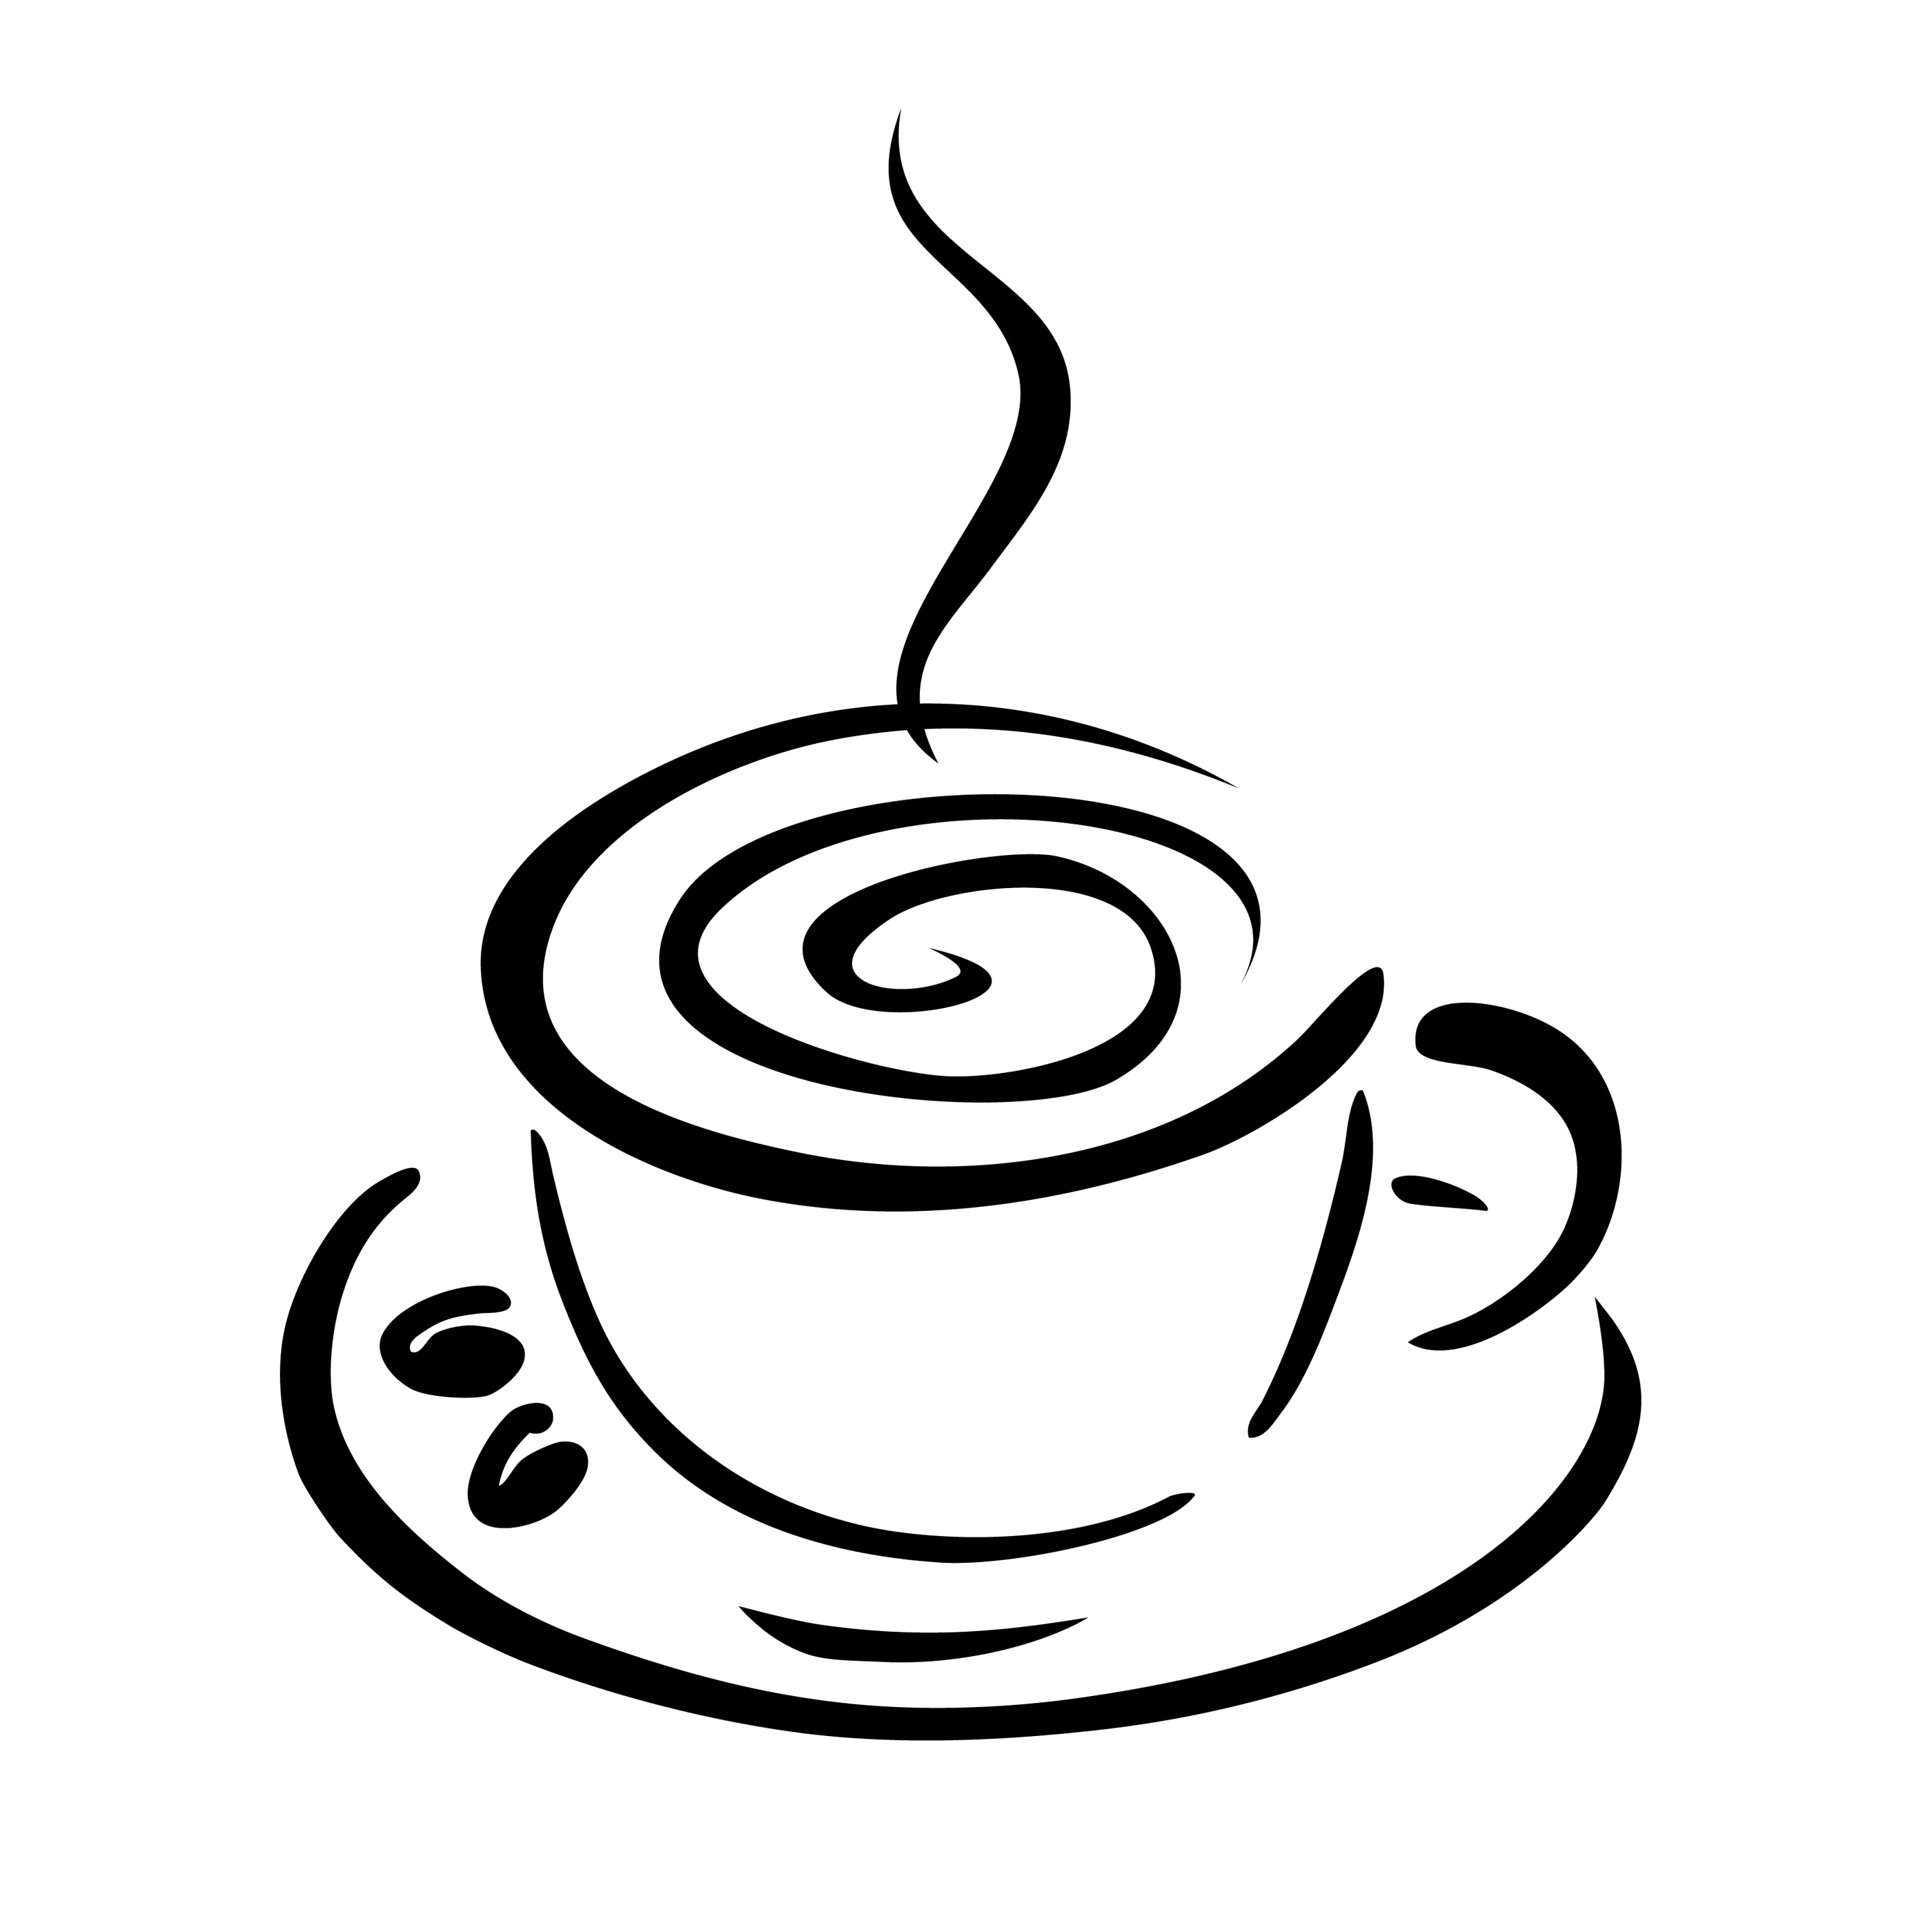 coffee cup clip art images - photo #42